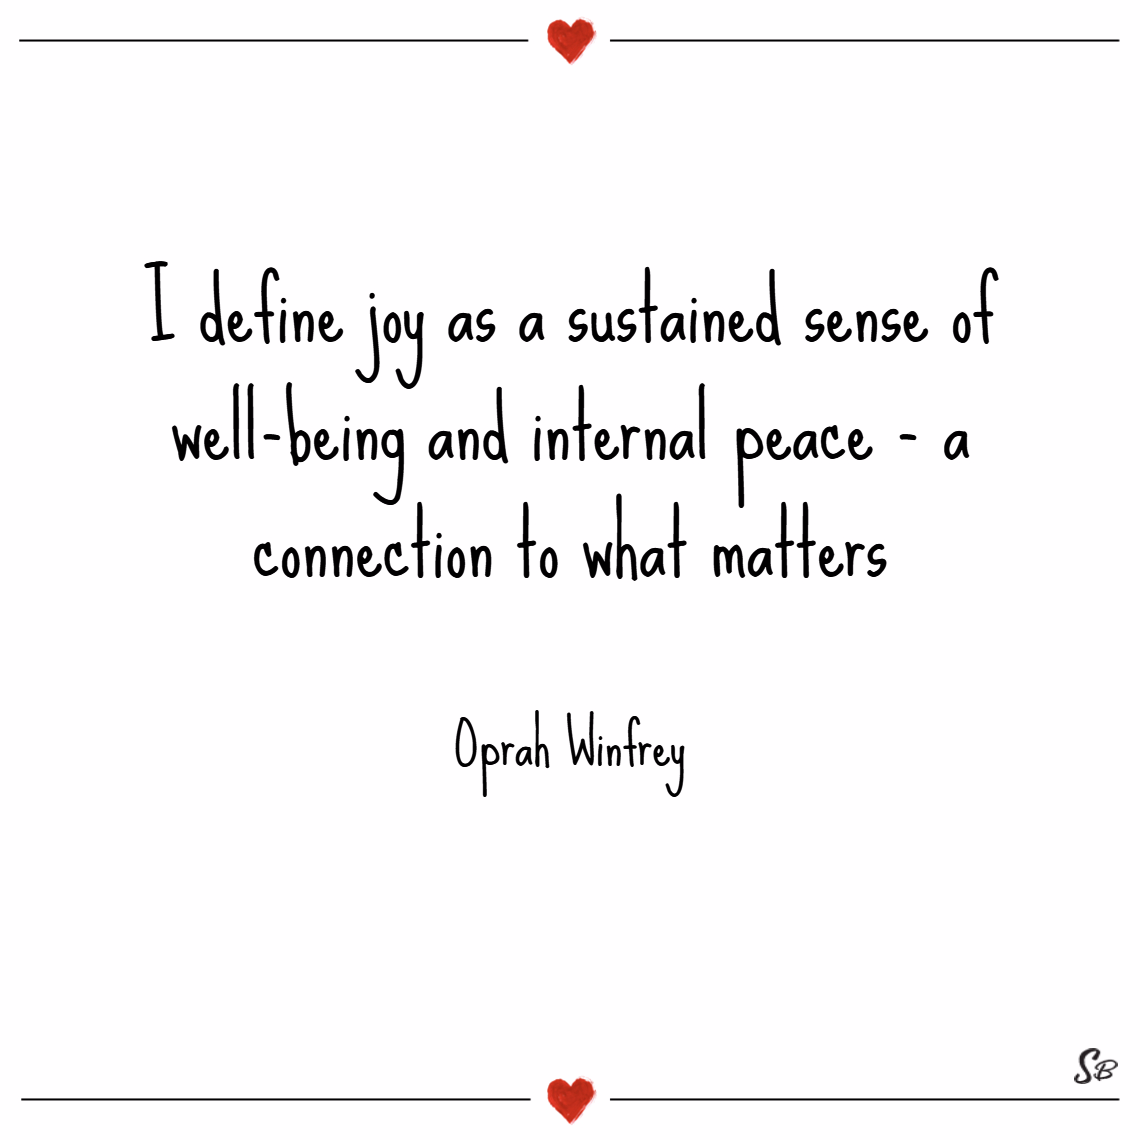 I define joy as a sustained sense of well being and internal peace a connection to what matters. – oprah winfrey